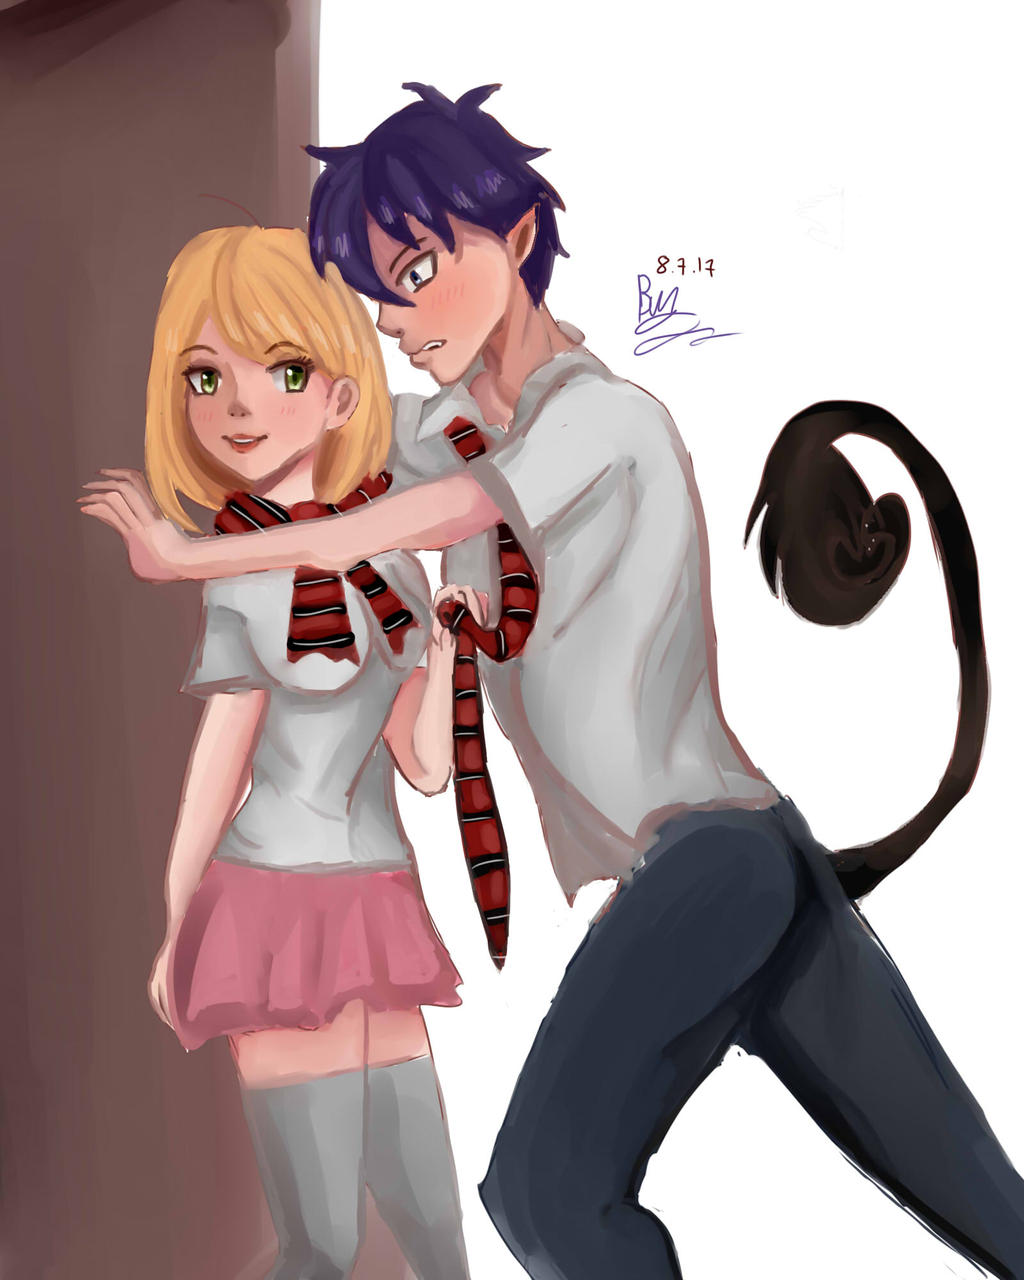 blue exorcist rin and shiemi relationship help